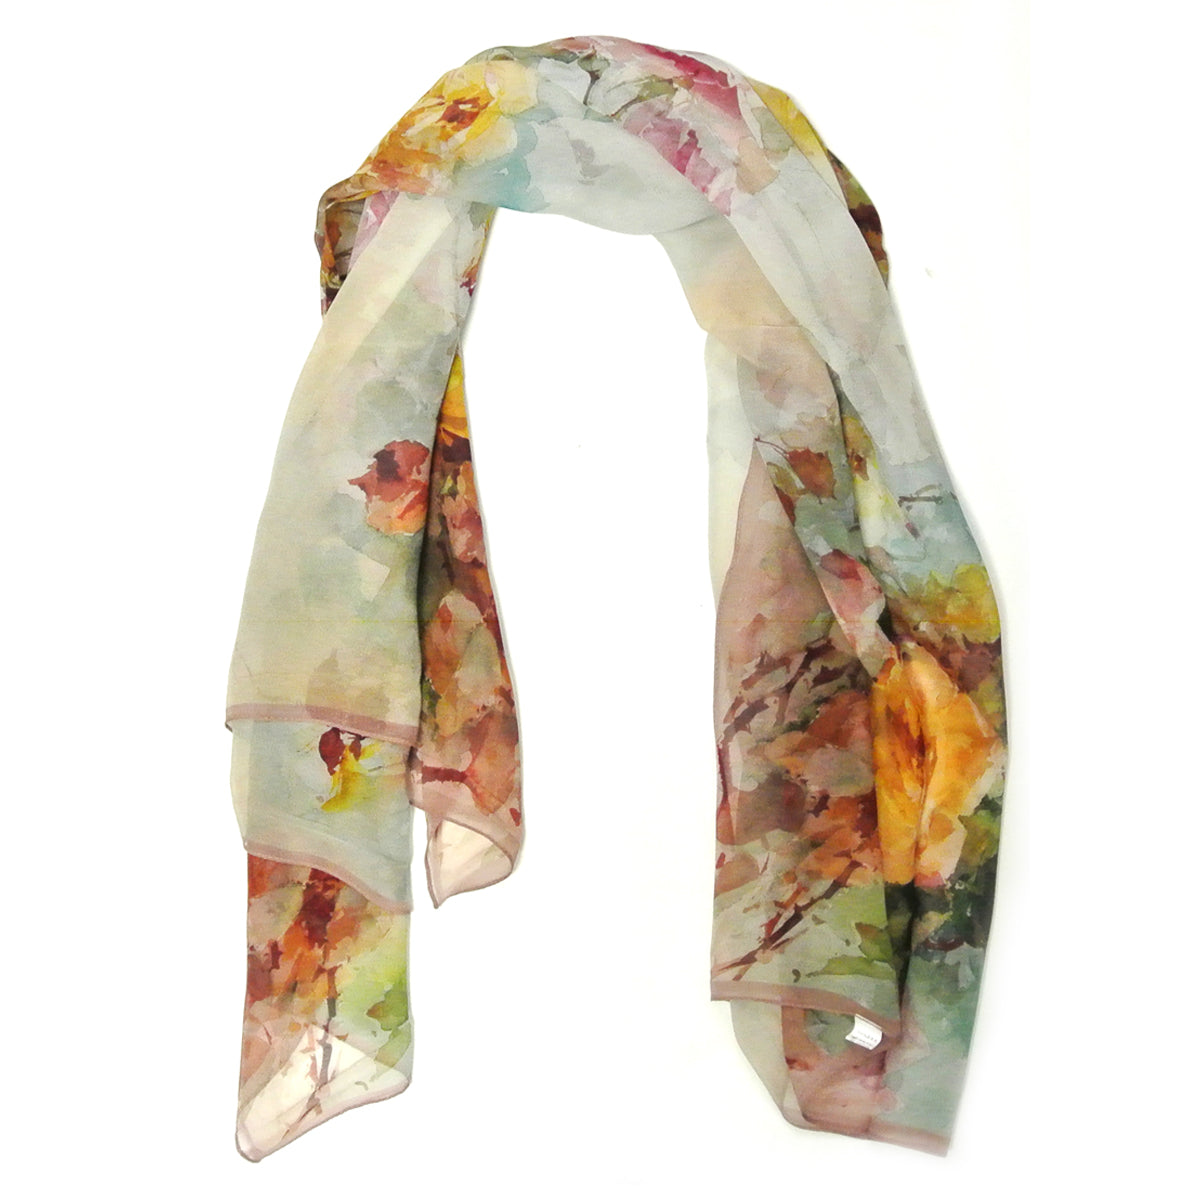 Wrapables 100% Mulberry Silk Floral Painting Square Scarf